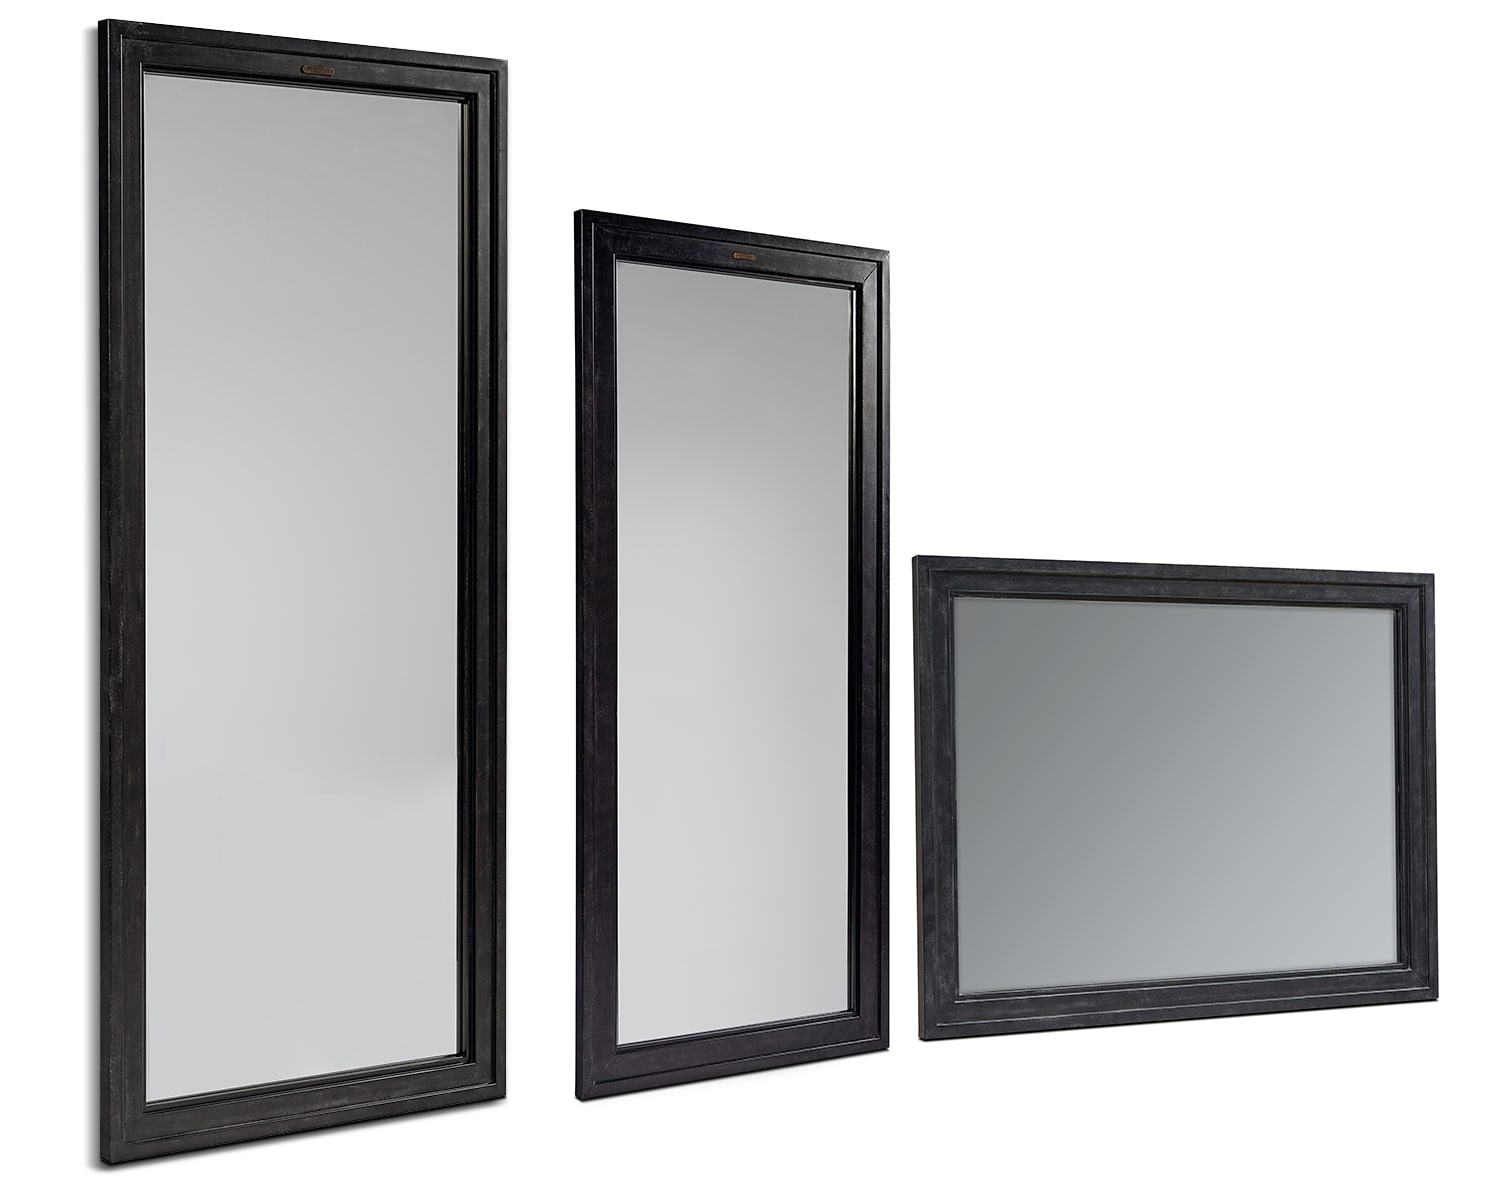 The Foundry Mirror Collection